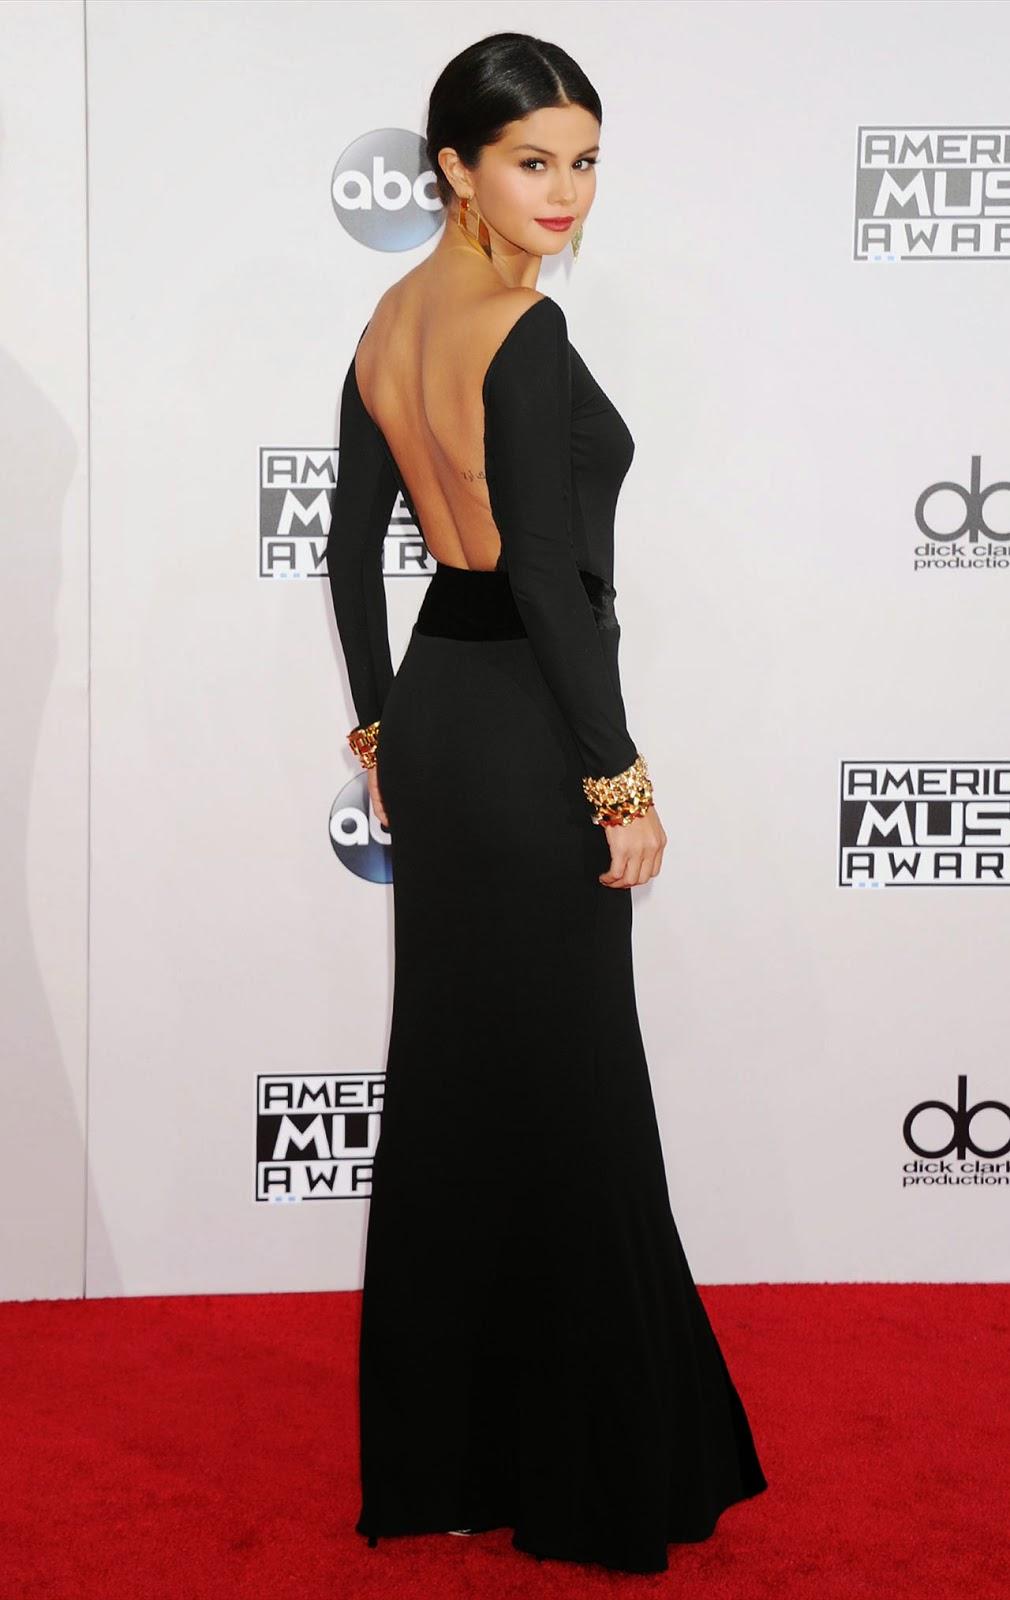 Selena Gomez Arrives At The 2014 American Music Awards In